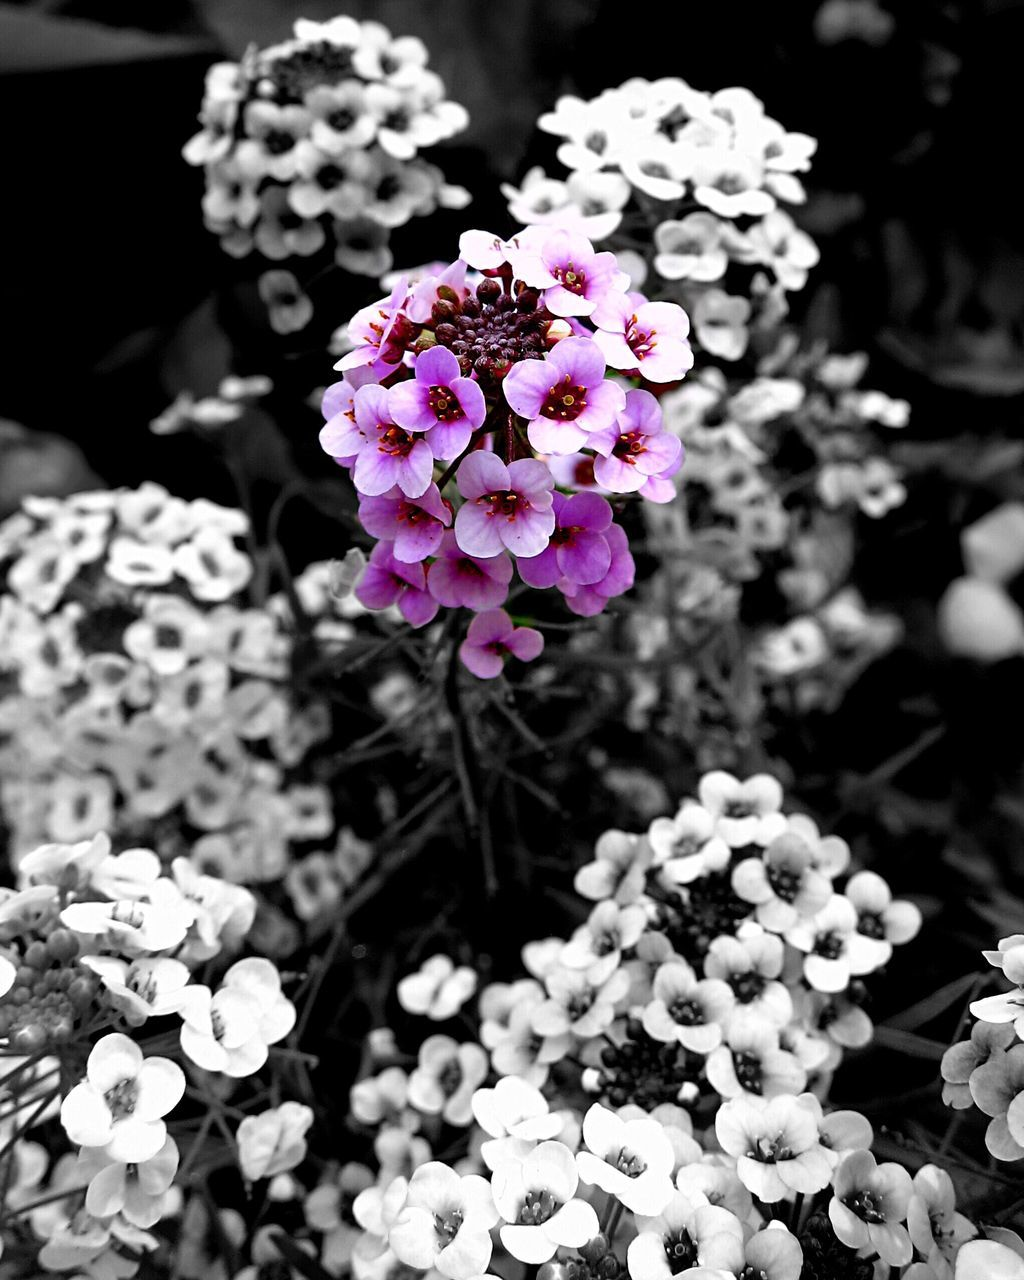 flower, fragility, freshness, beauty in nature, nature, growth, petal, flower head, outdoors, day, no people, plant, focus on foreground, blooming, purple, close-up, pink color, animal themes